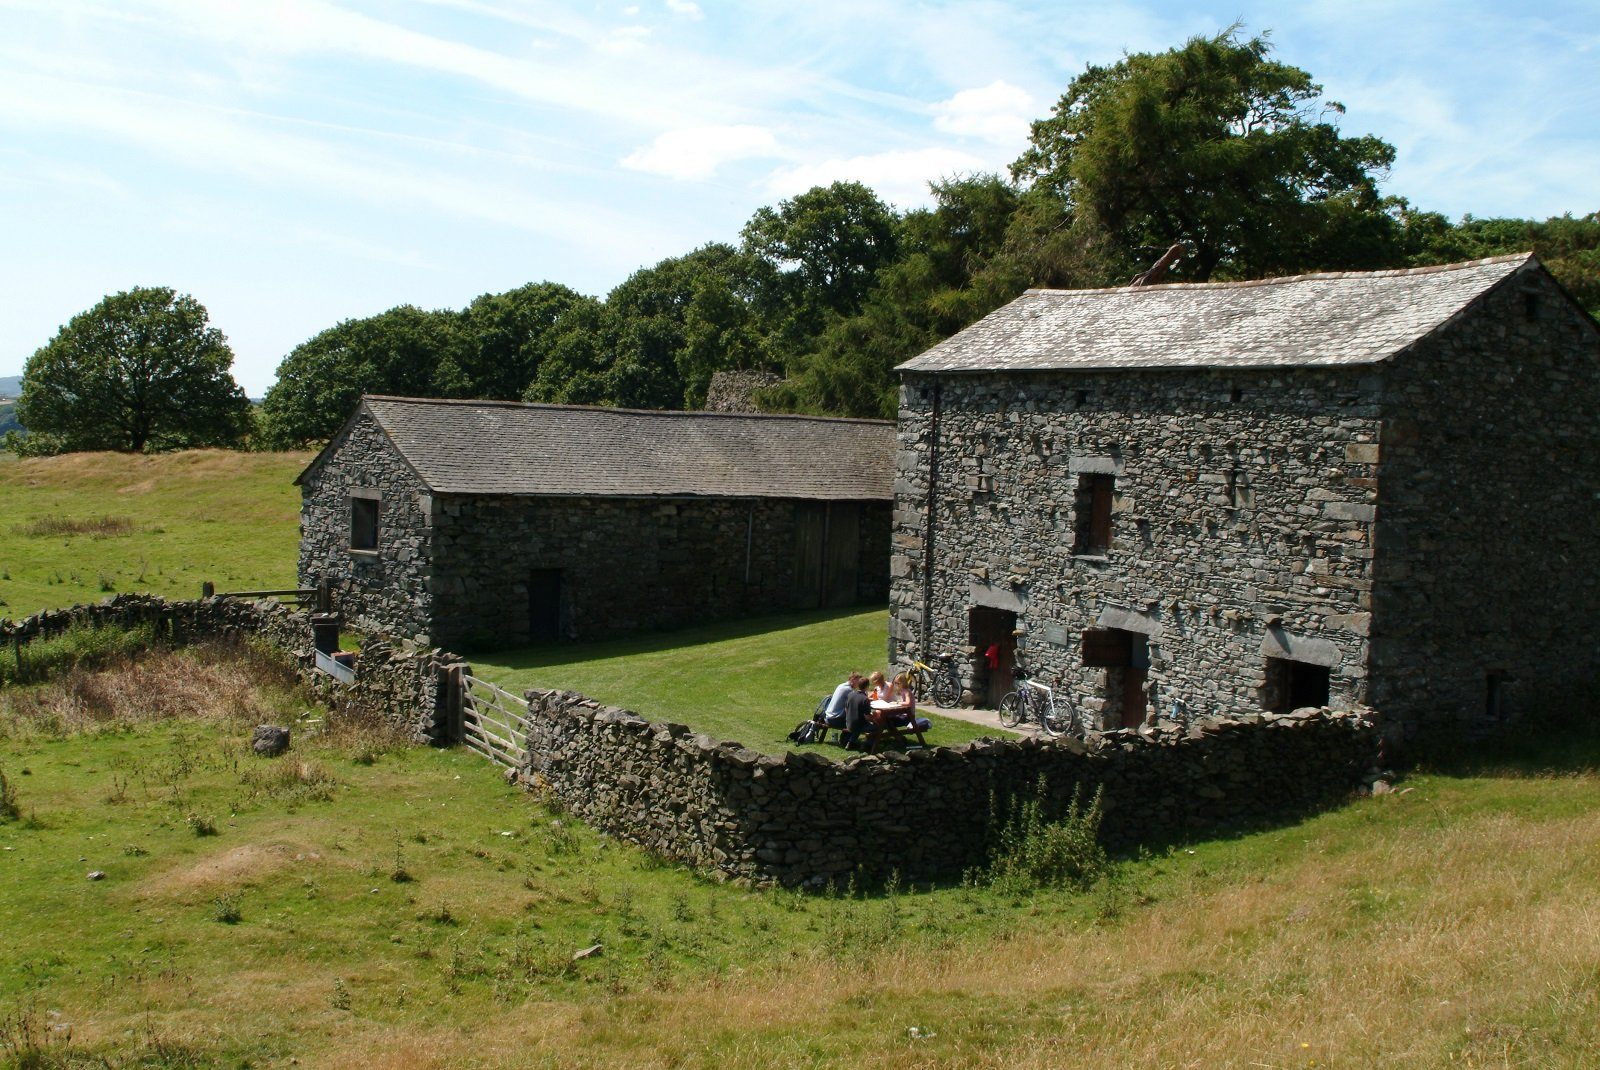 Lake District Camping Barn